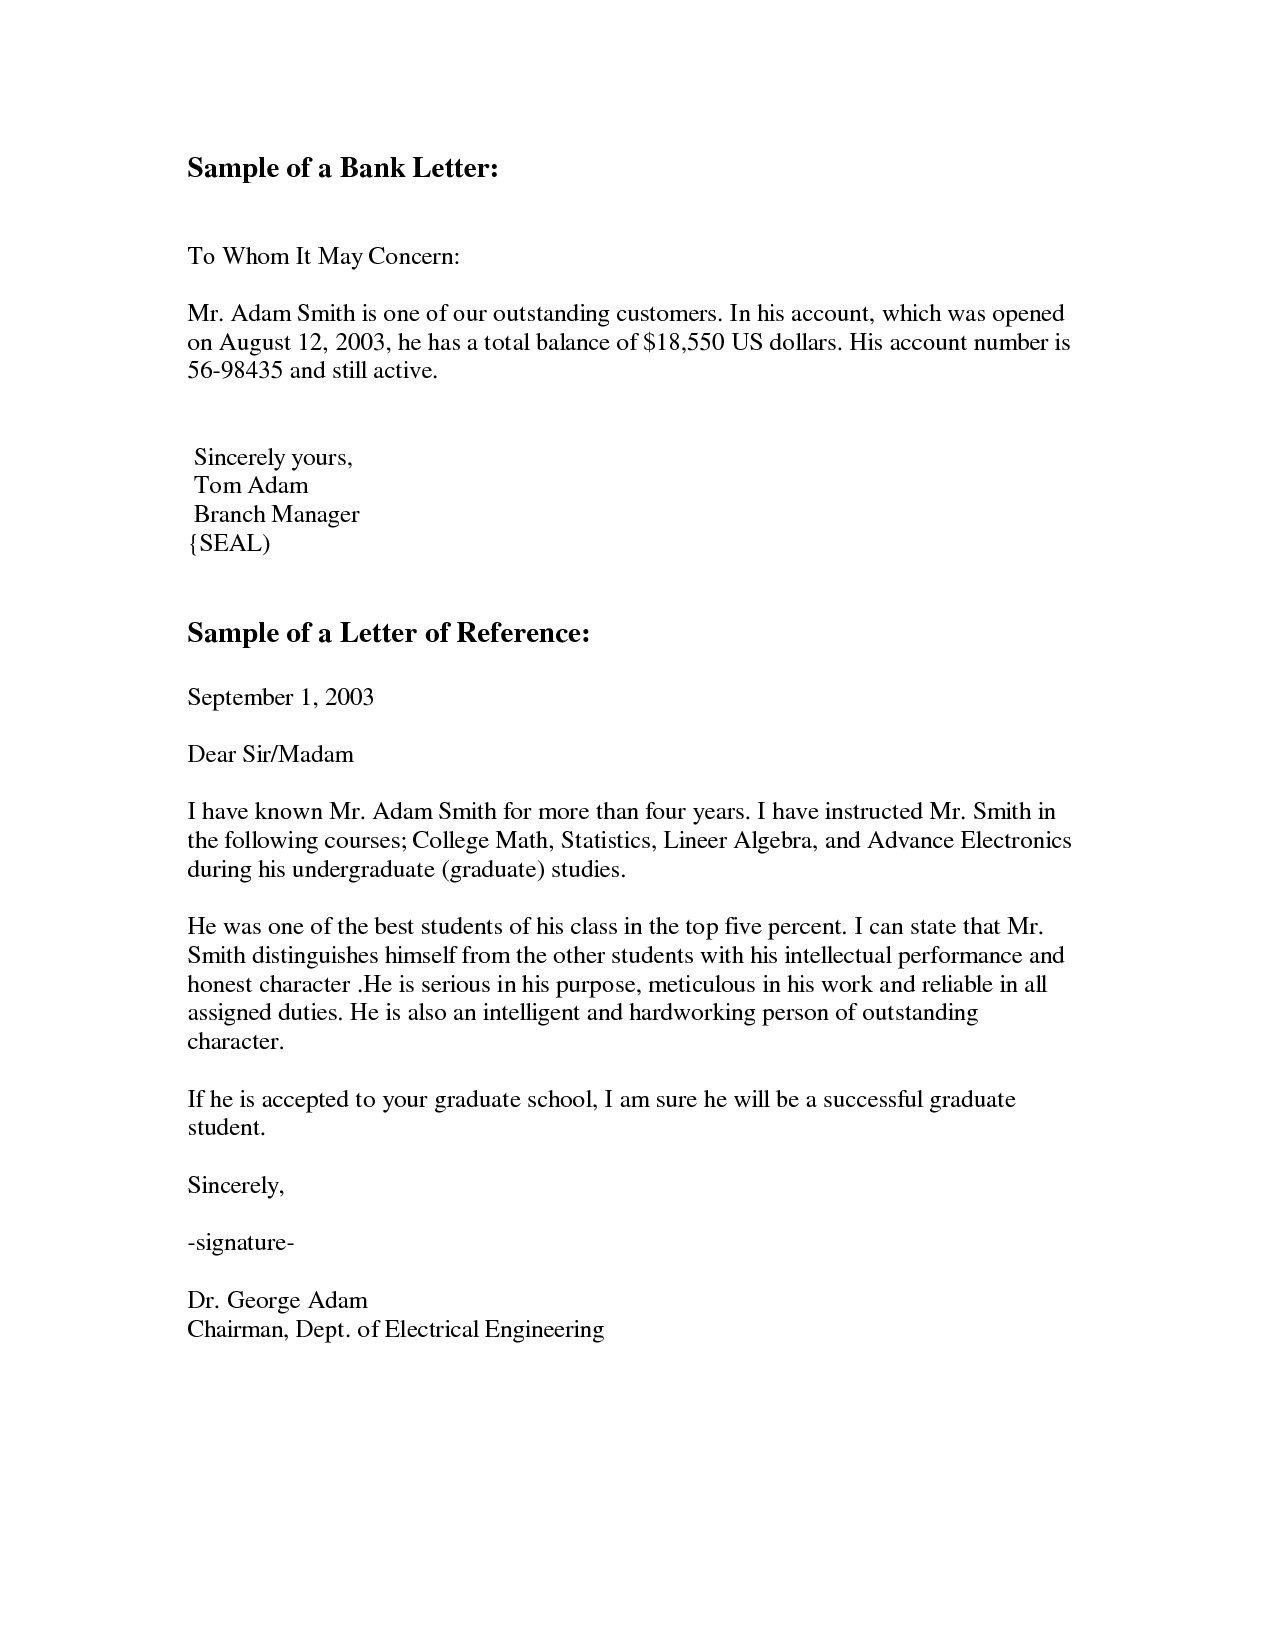 professional letter template Collection-Business Bylaws Template Best Formal Letter Template Unique Bylaws Template 0d Wallpapers 50 18-k